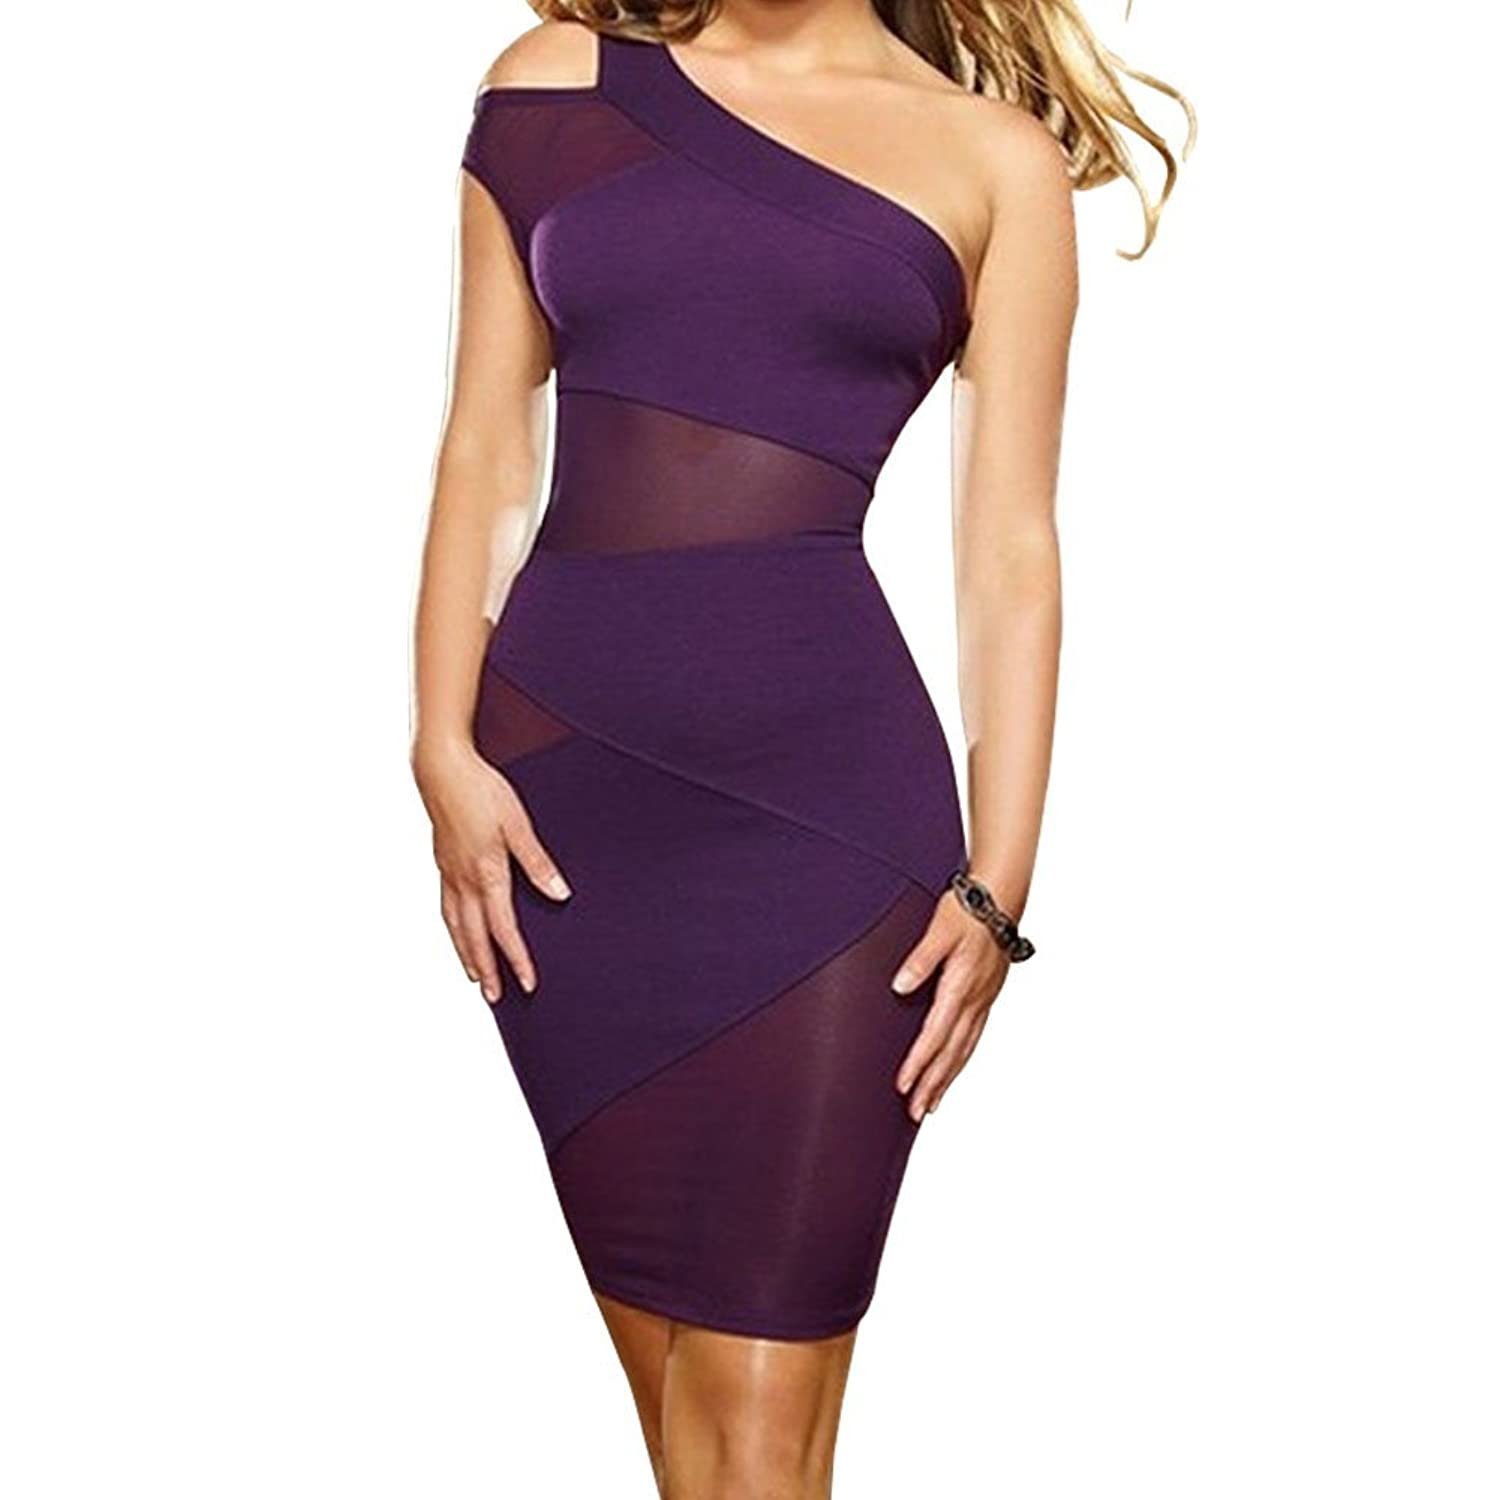 BLH Womens Sexy Bandage Bodycon Lace Evening Party Cocktail Short Mini Dress